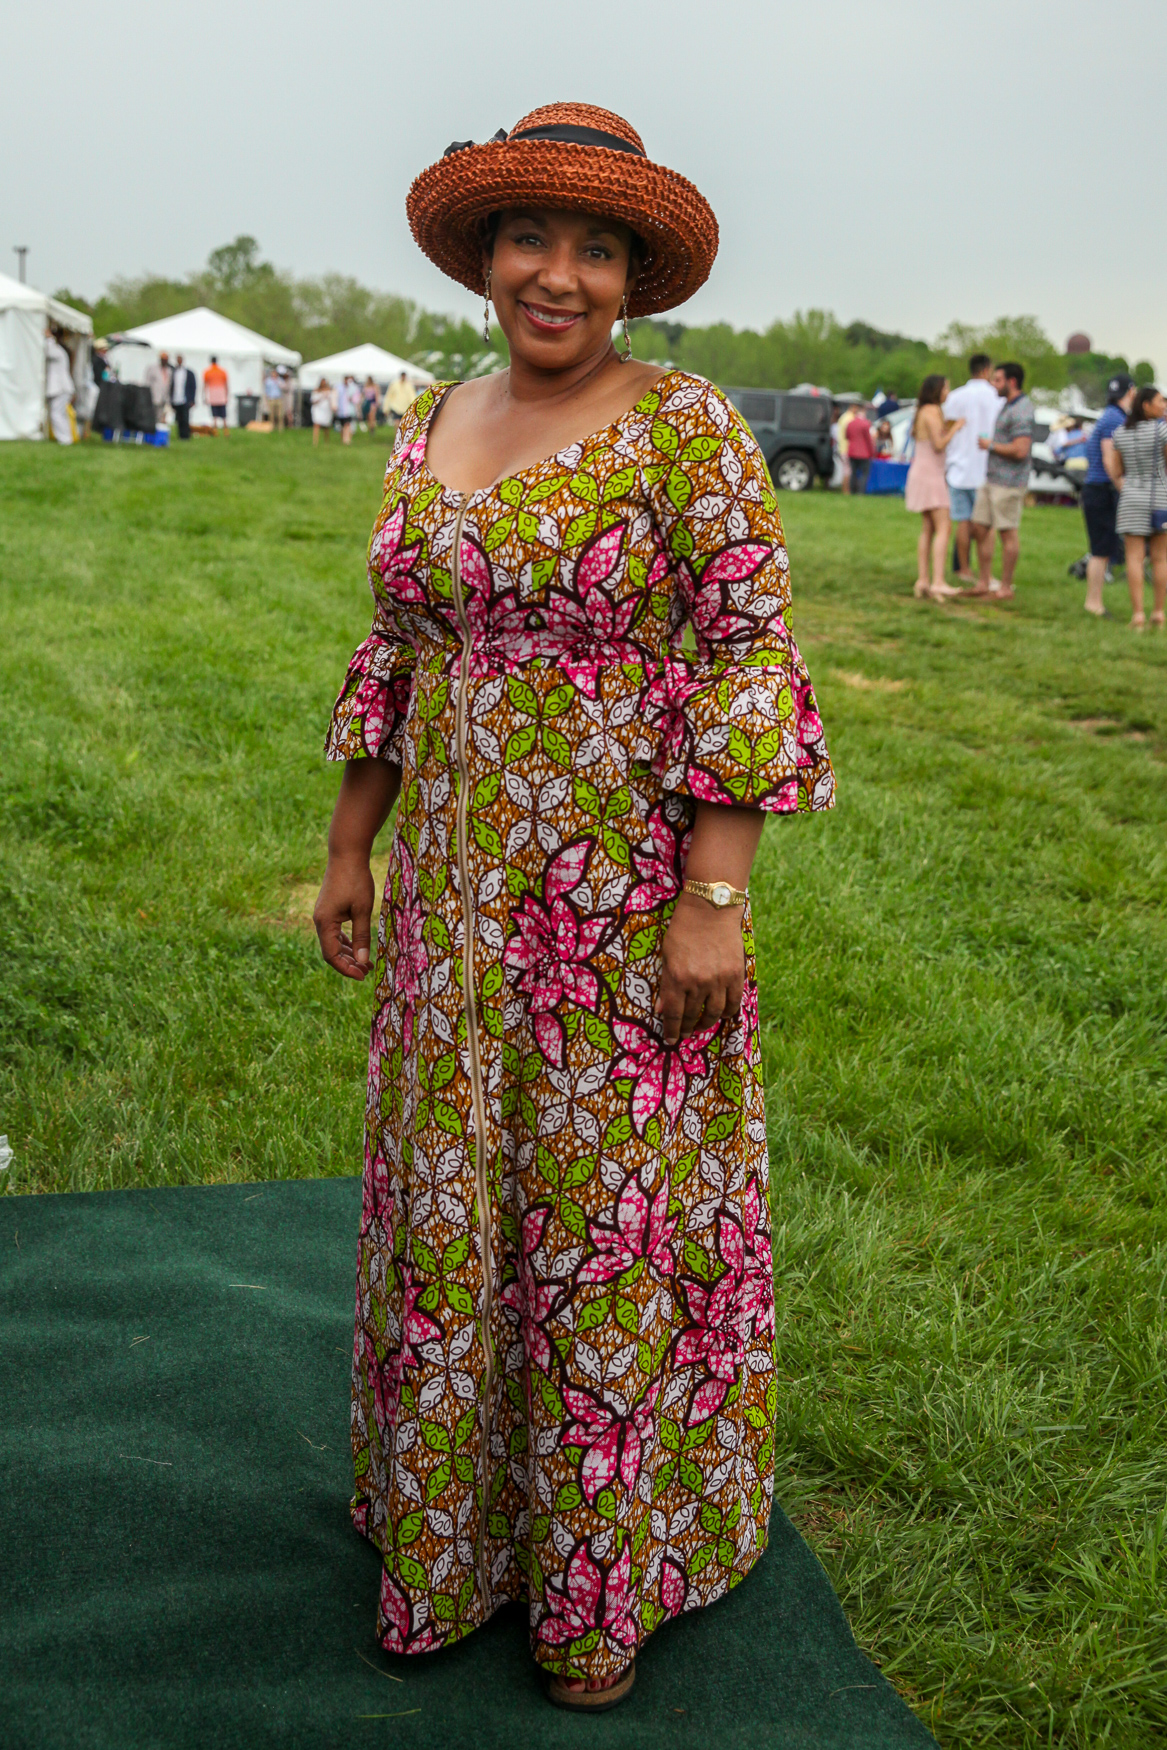 In a sea of Lily Pulitzer, this dress was a refreshing break.{ }(Amanda Andrade-Rhoades/DC Refined)